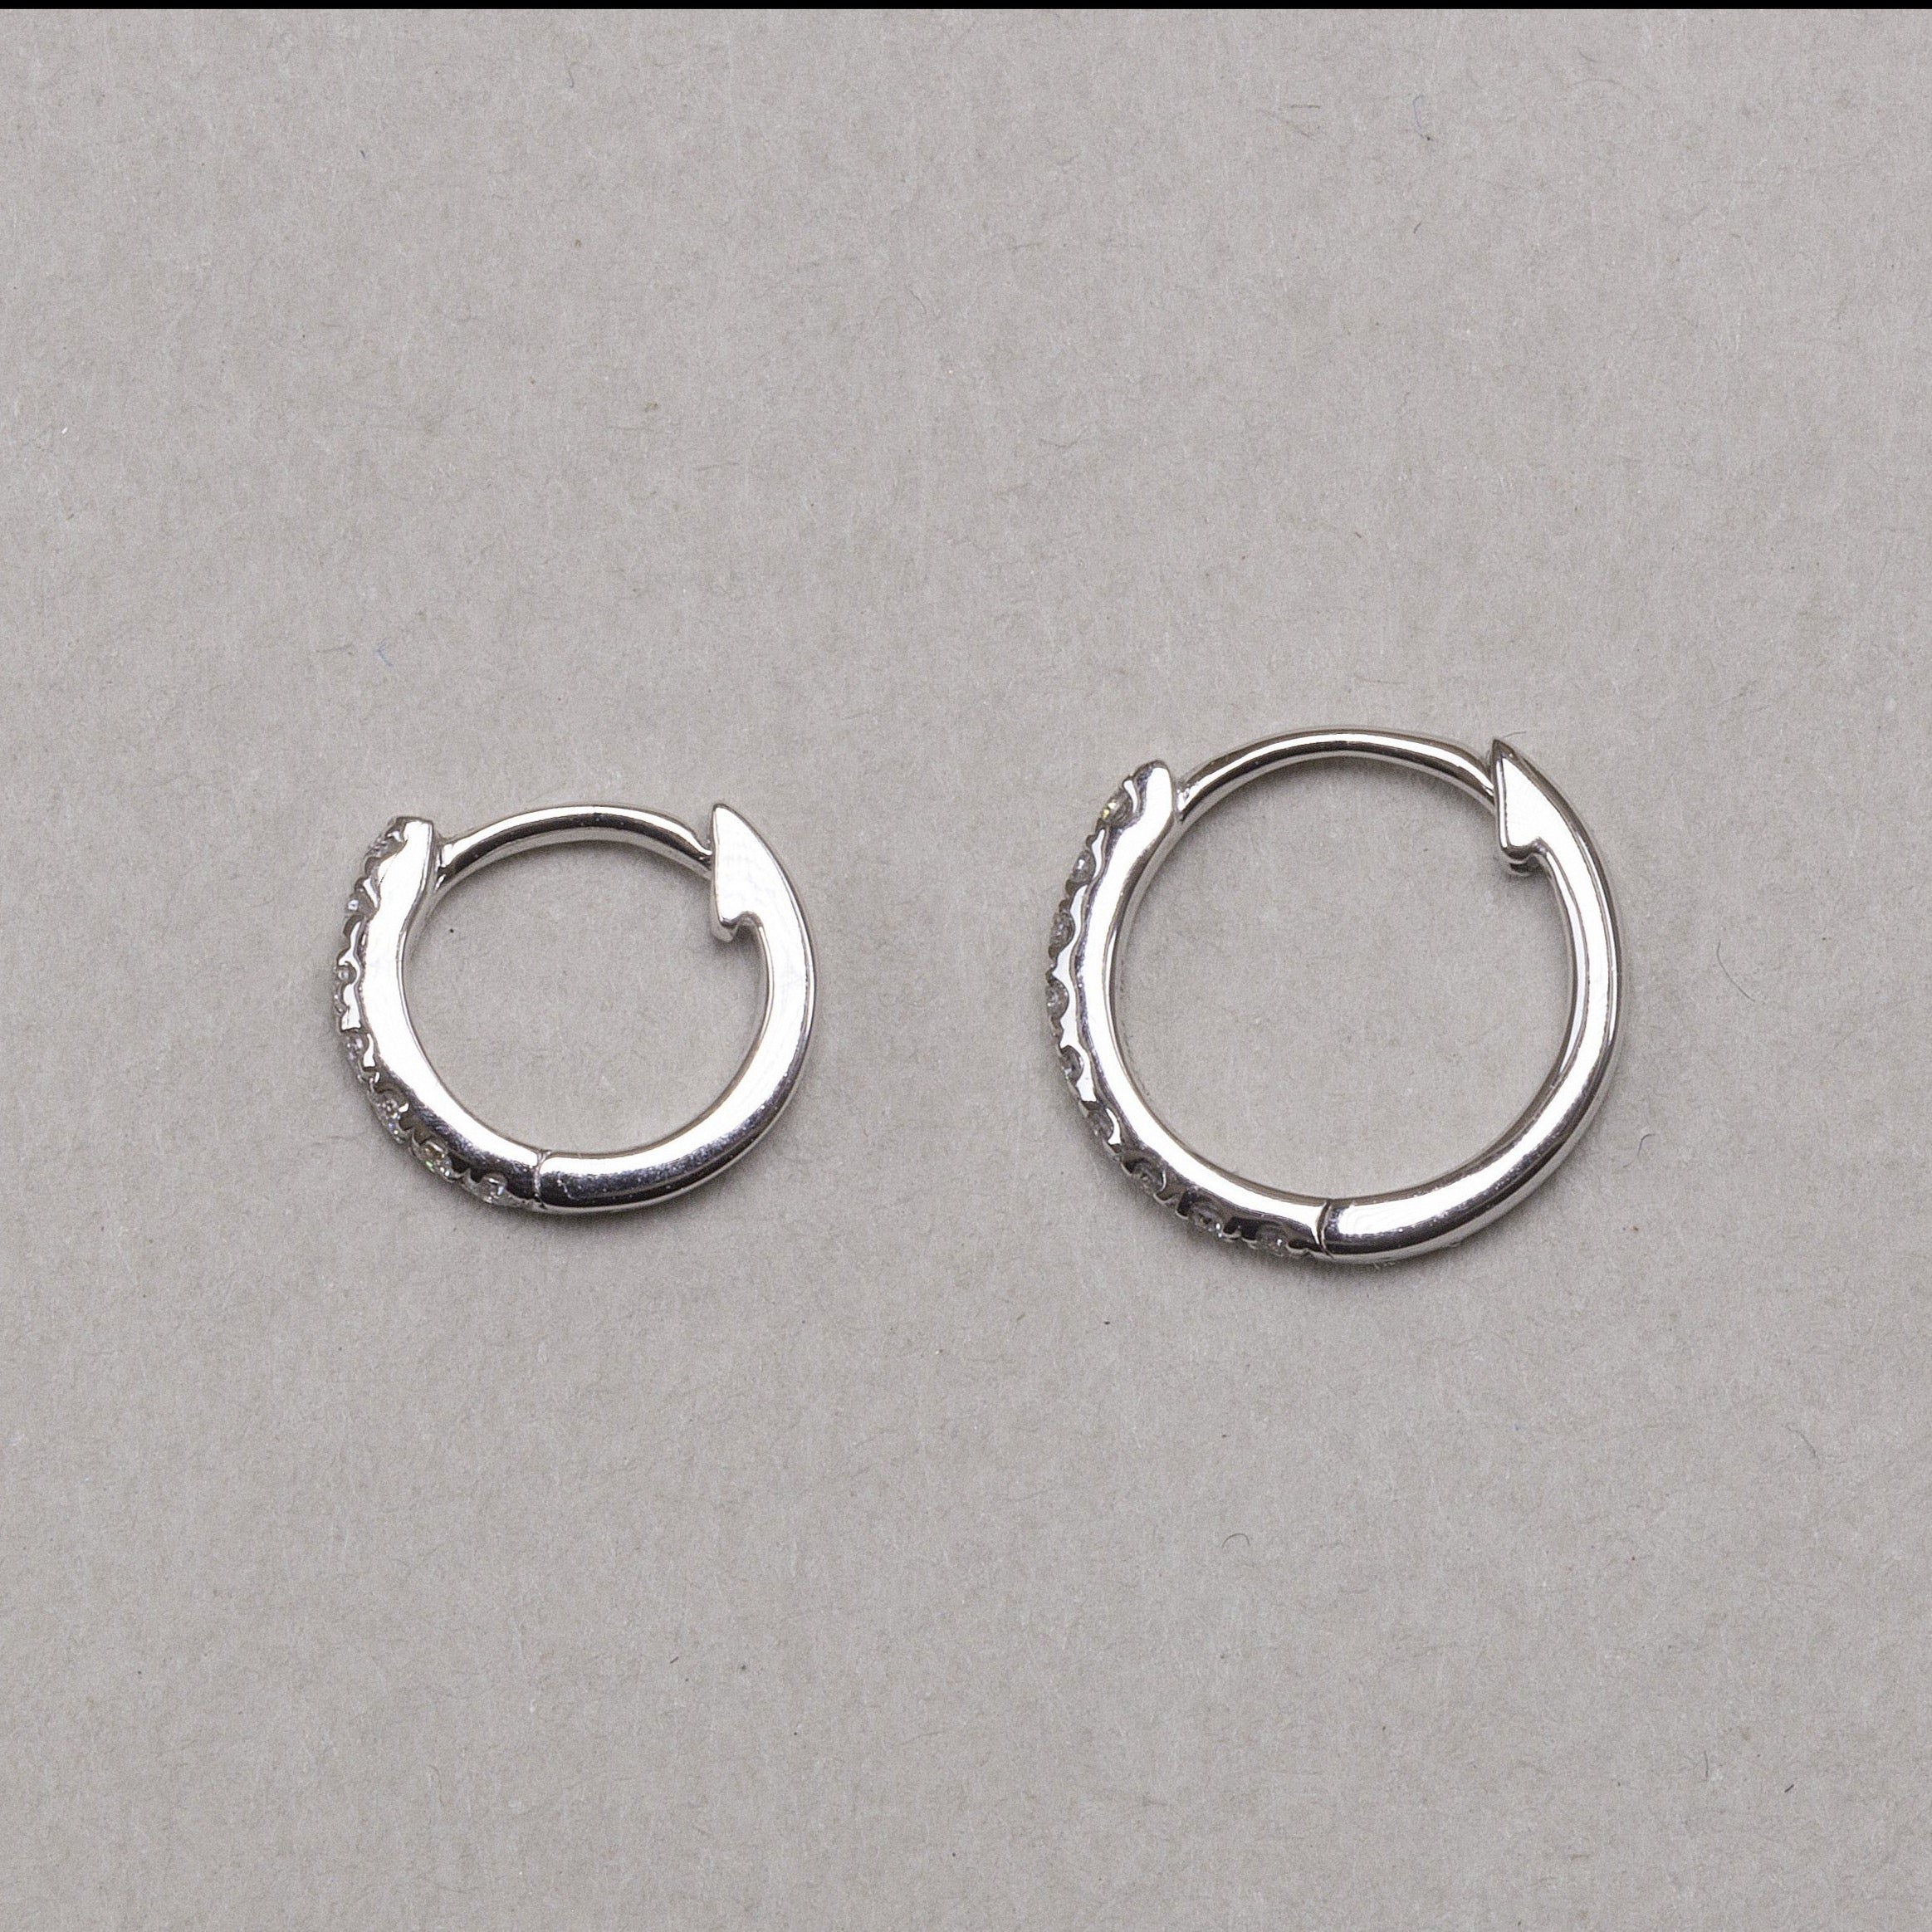 from left: 8mm and 10mm